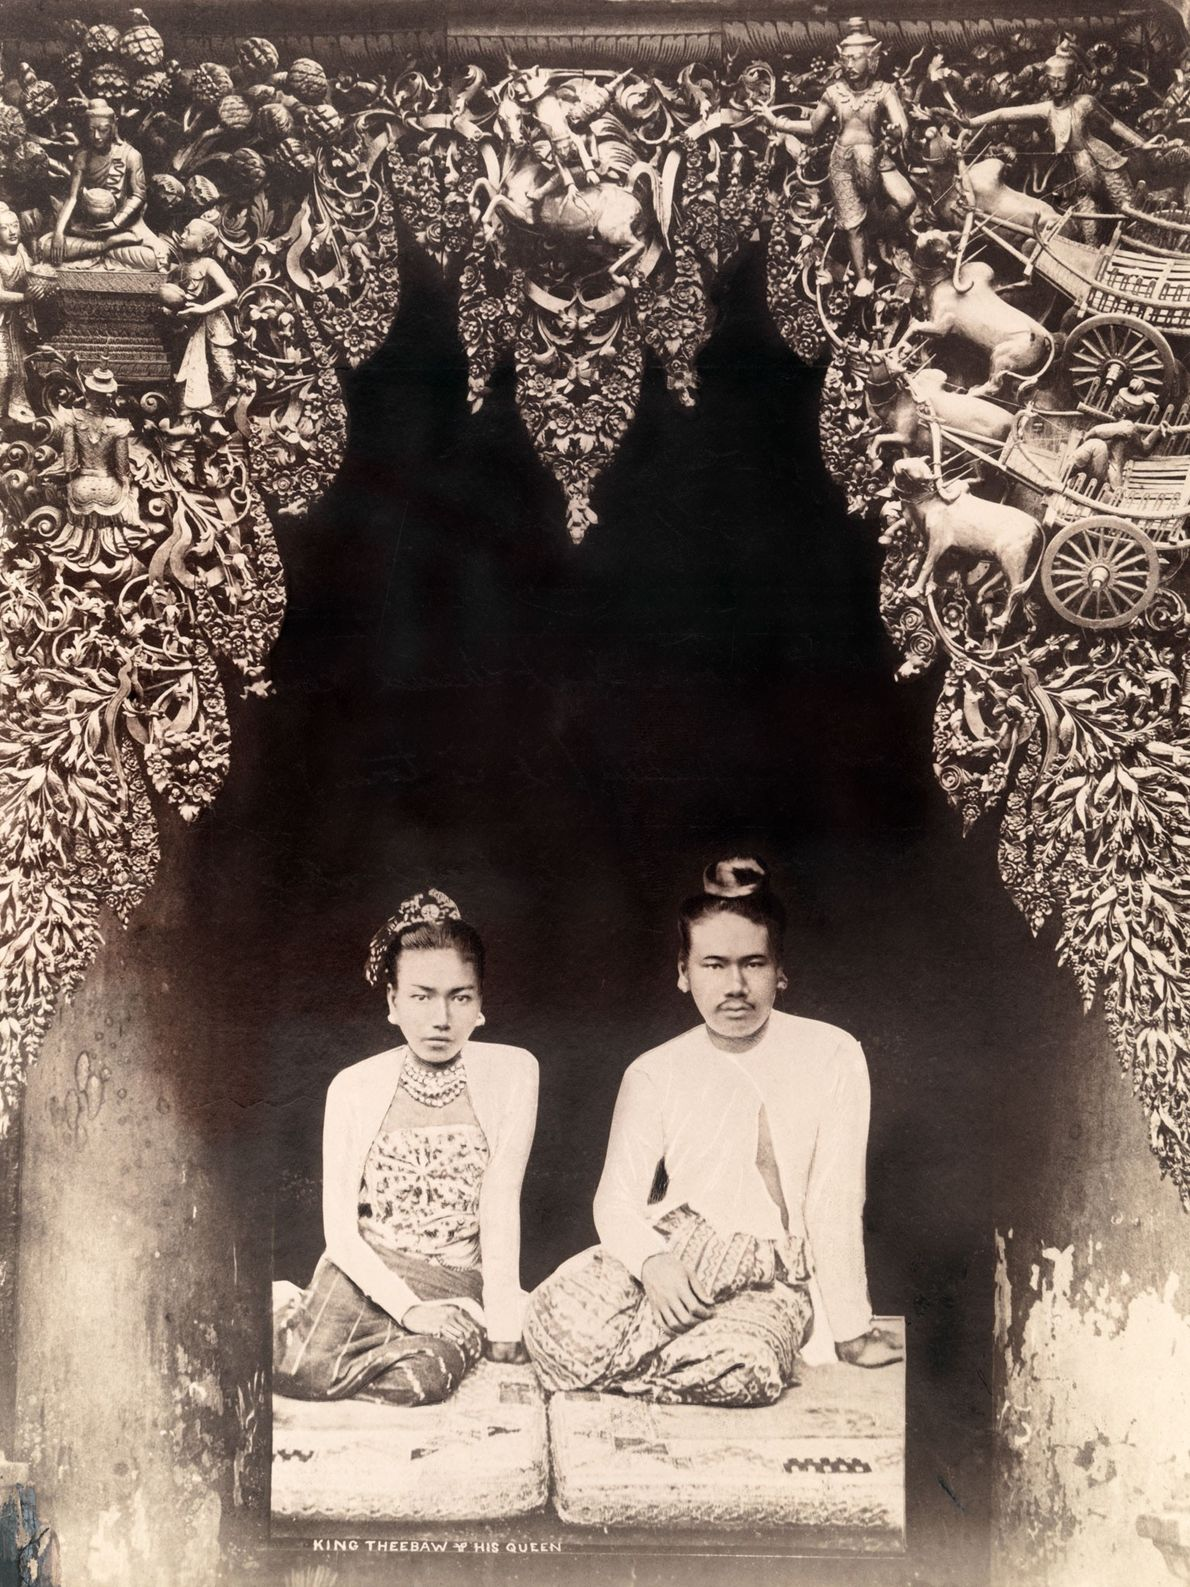 King Thibaw and Queen Supayalat, the last reigning monarchs of Burma (now known as Myanmar), sit ...